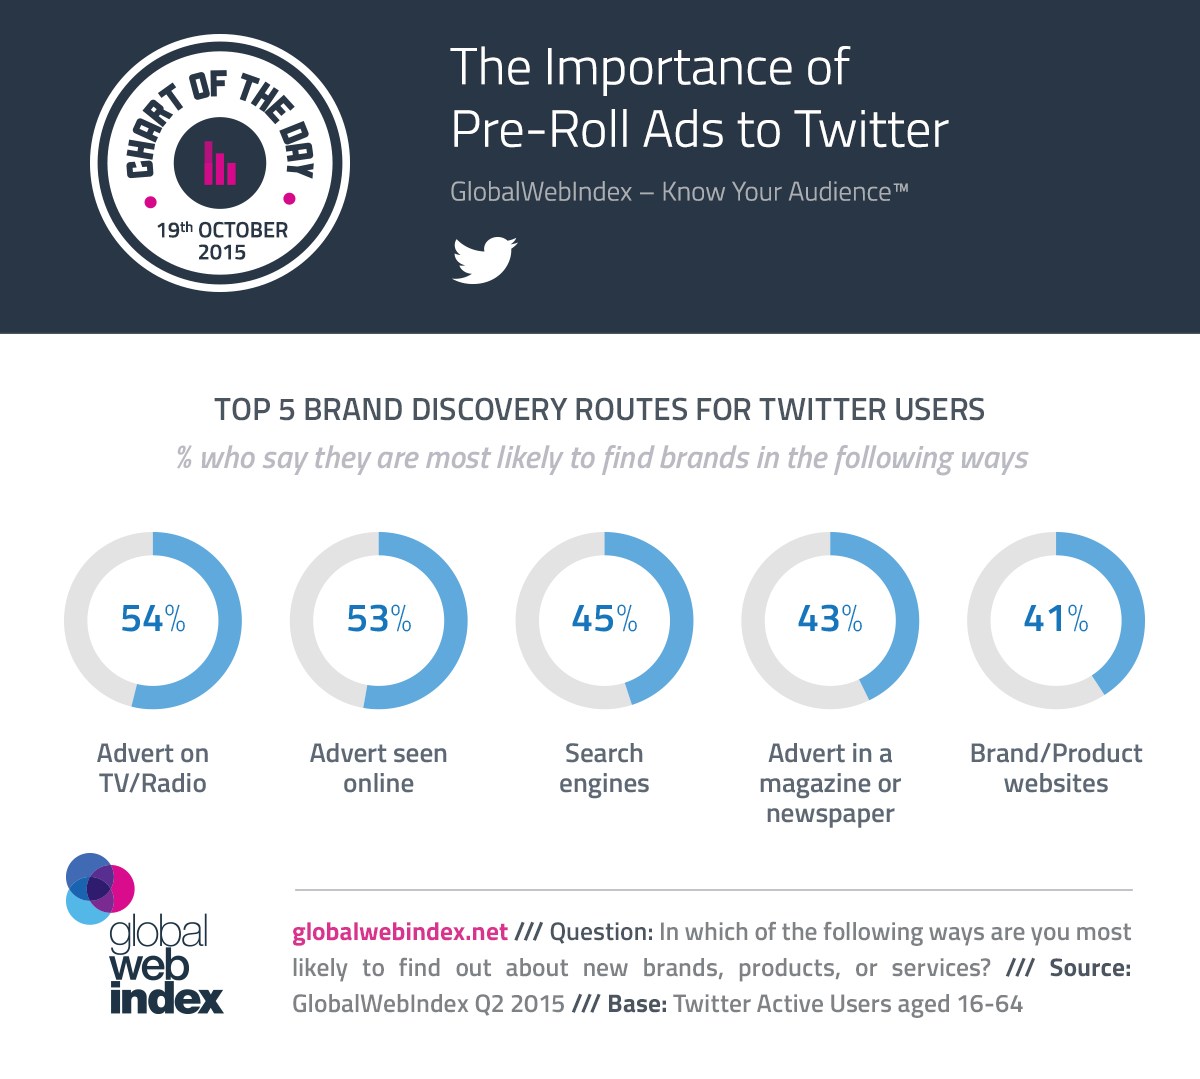 19th-Oct-2015-The-Importance-of-Pre-Roll-Ads-to-Twitter